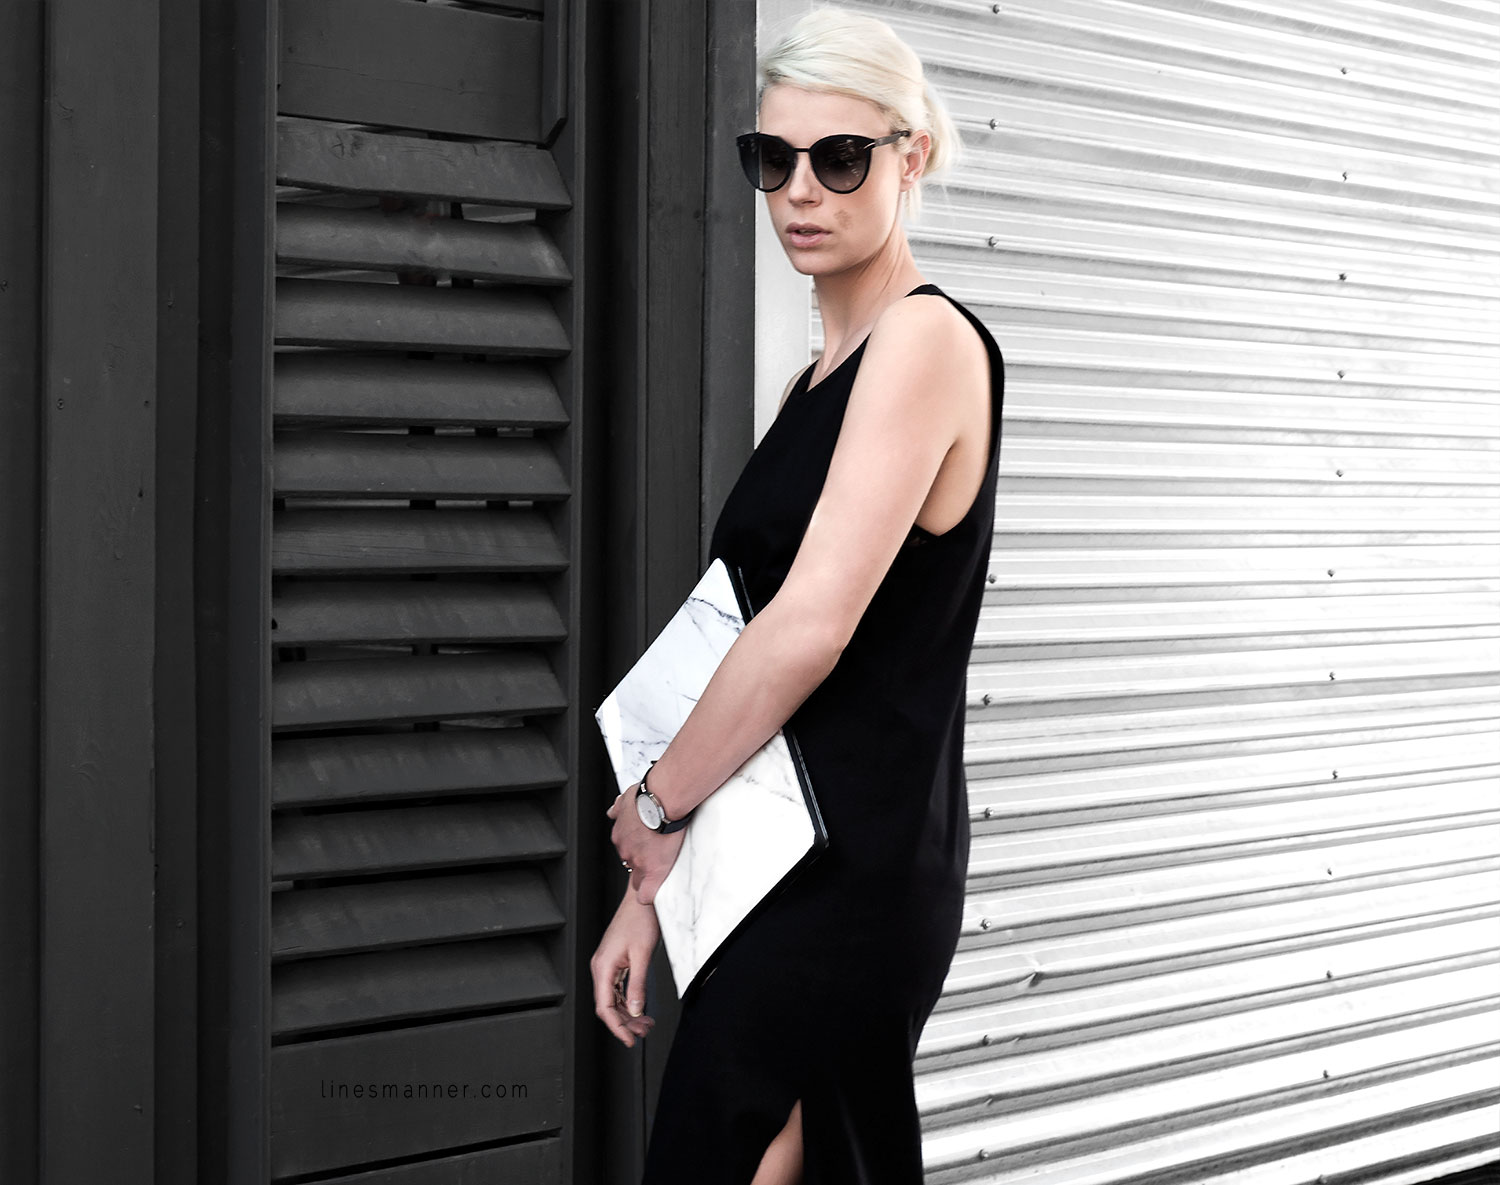 Lines-Manner-Minimal-Clean-Simplicity-Slide_Slit_Dress-Organic_Cotton-Rada_Studio_Essentials-Marble-Details-Outfit-Fashion-Monochrome-Timeless-Modern-Handmade-4